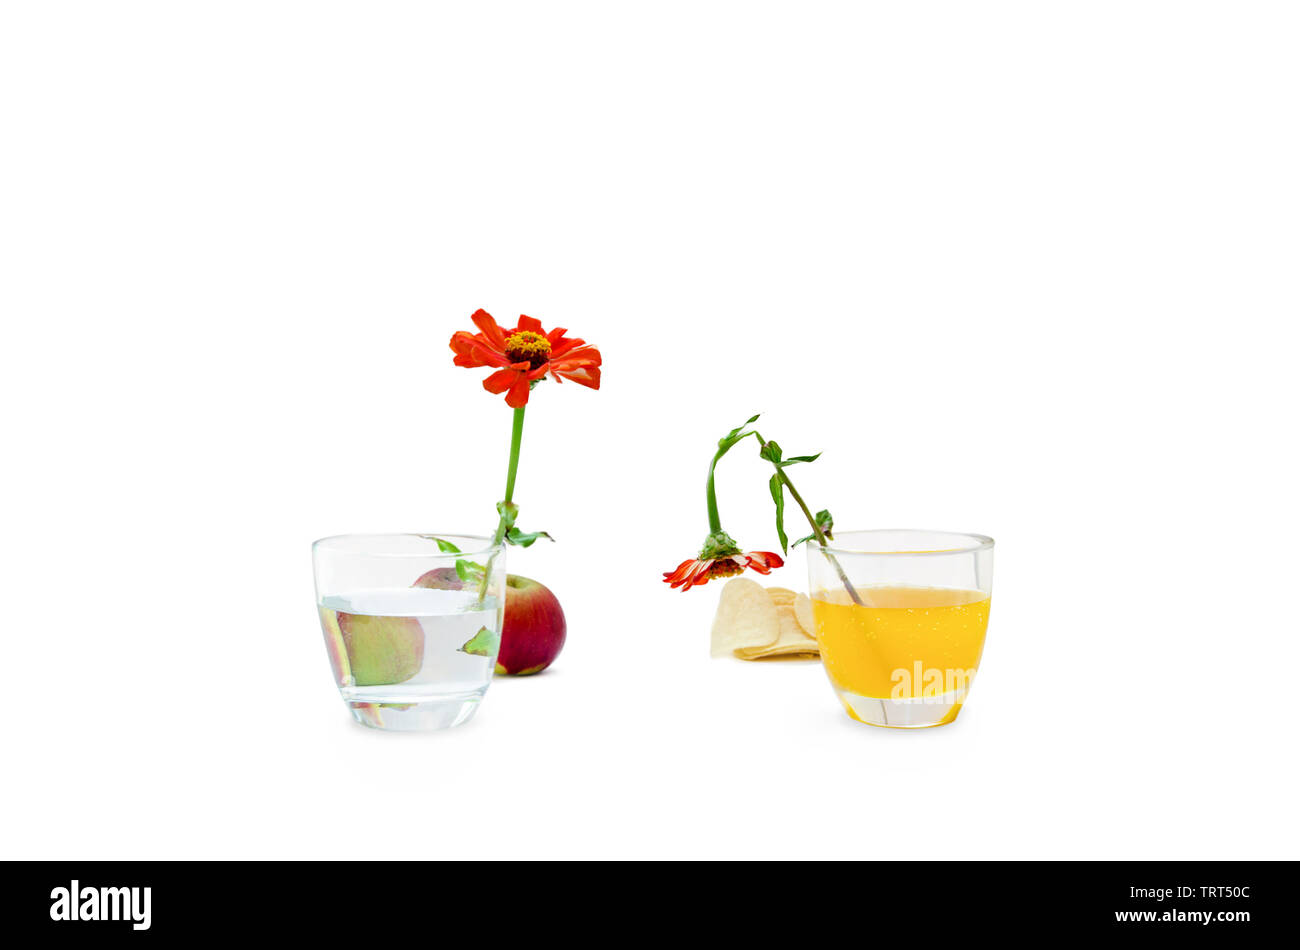 Concept of healthy vs unhealthy food on white background - Stock Image